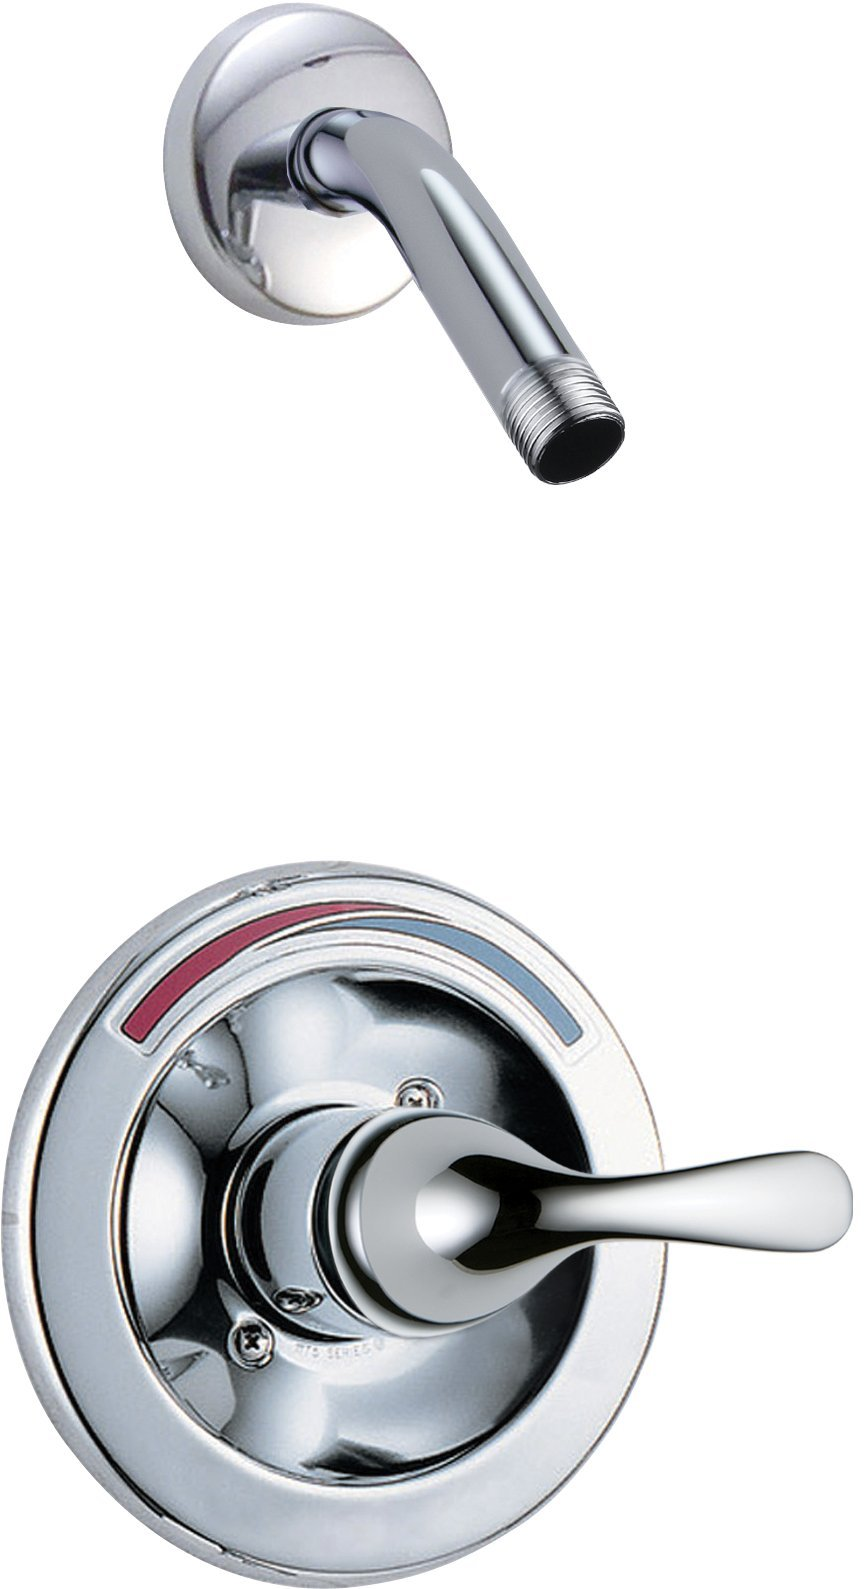 Delta T13291-LHD Classic Monitor 13 Series Shower Trim - Less Showerhead, Chrome